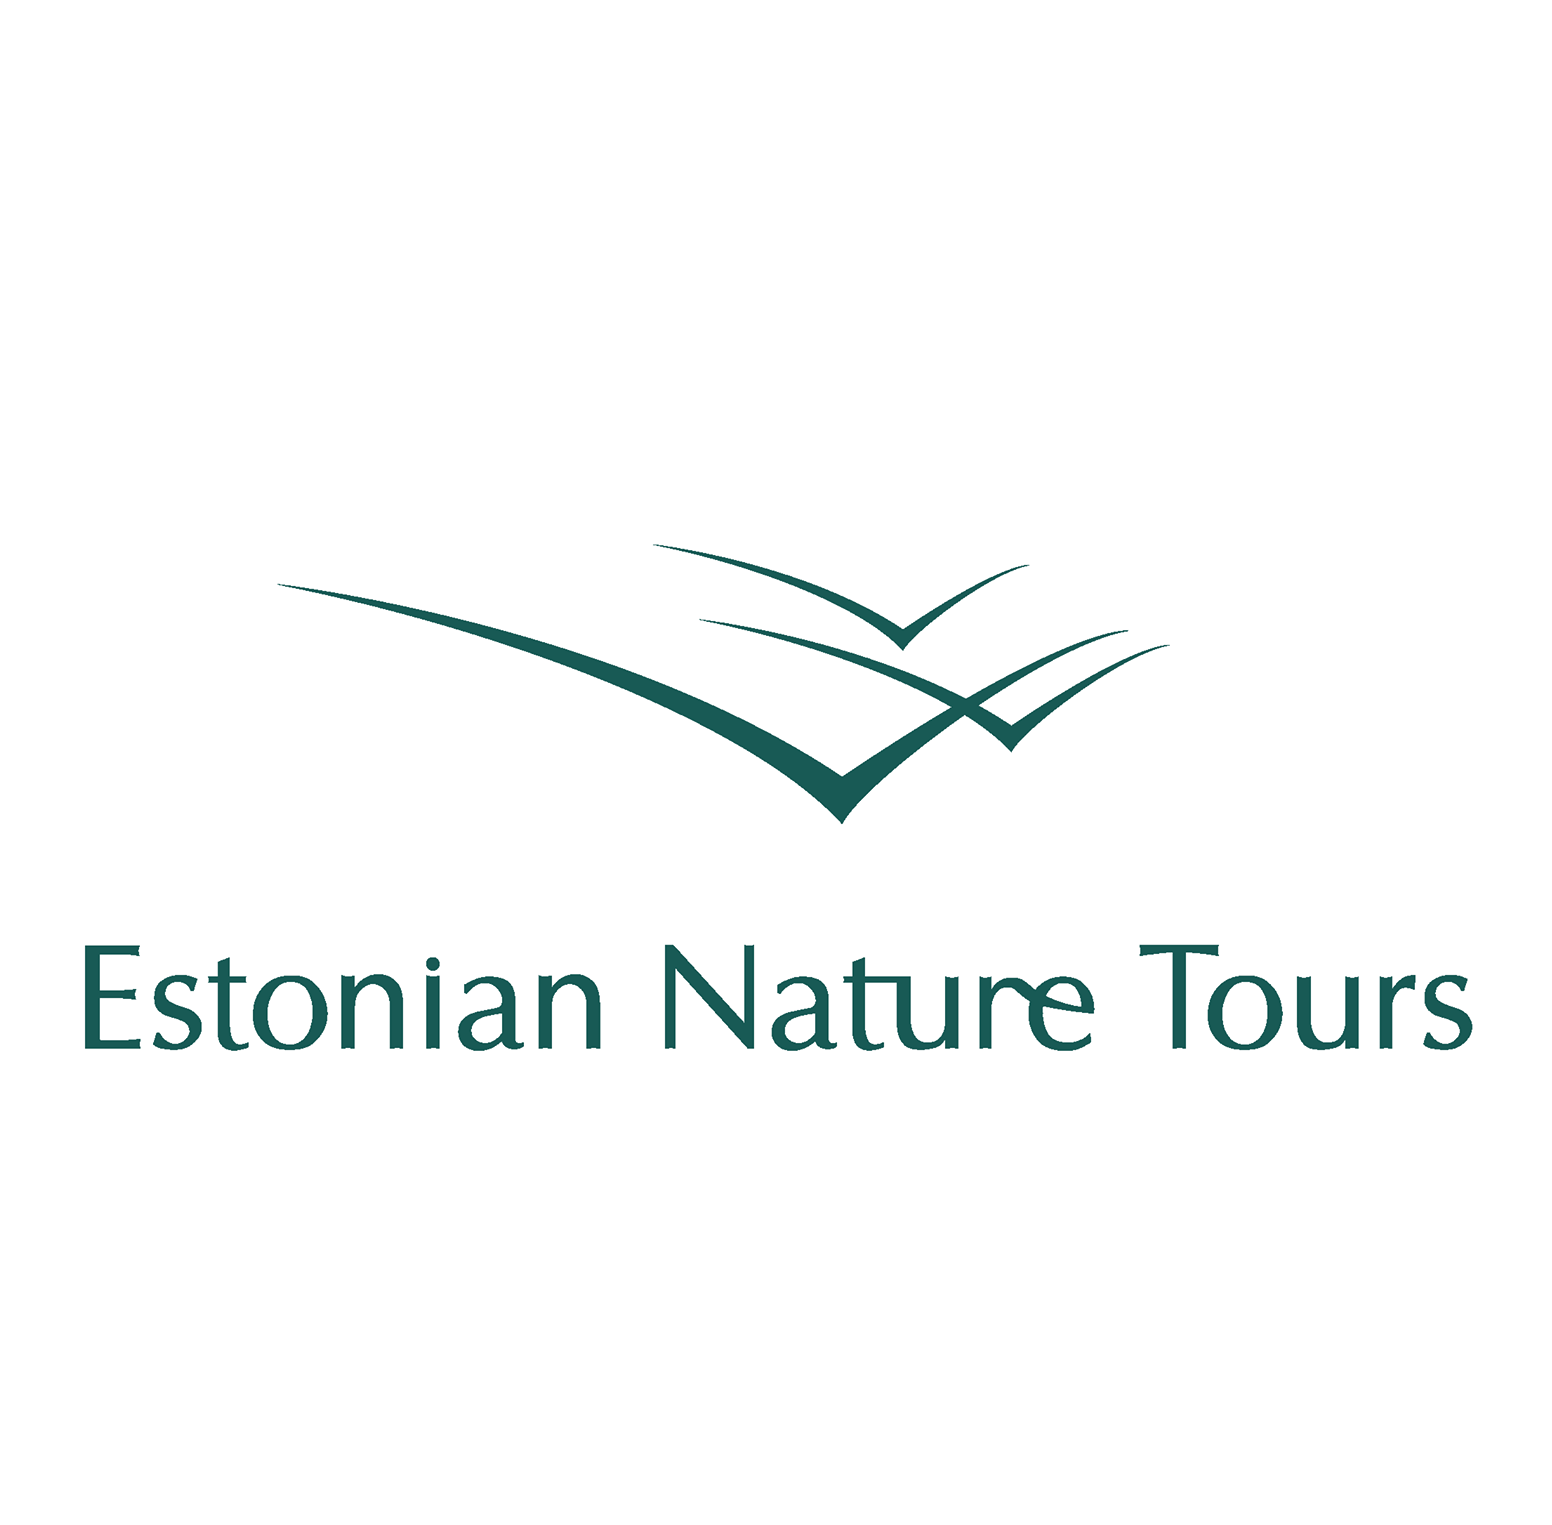 Estonian Nature Tours